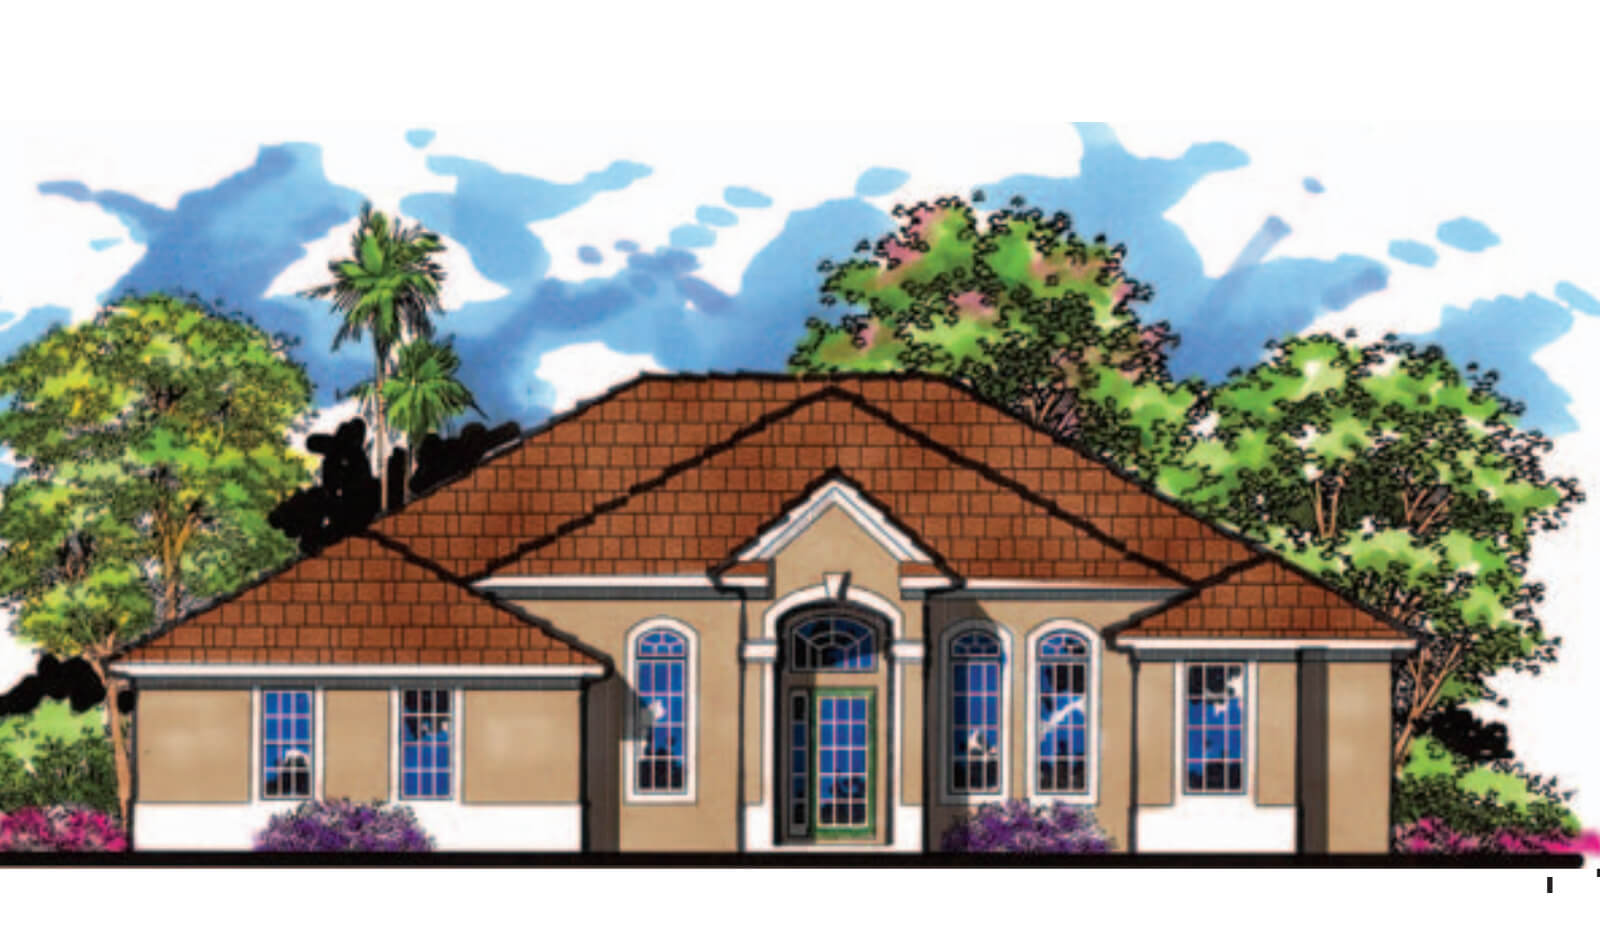 Floor Plans,2,501 SQ FT TO 3,000 SQ FT,1063